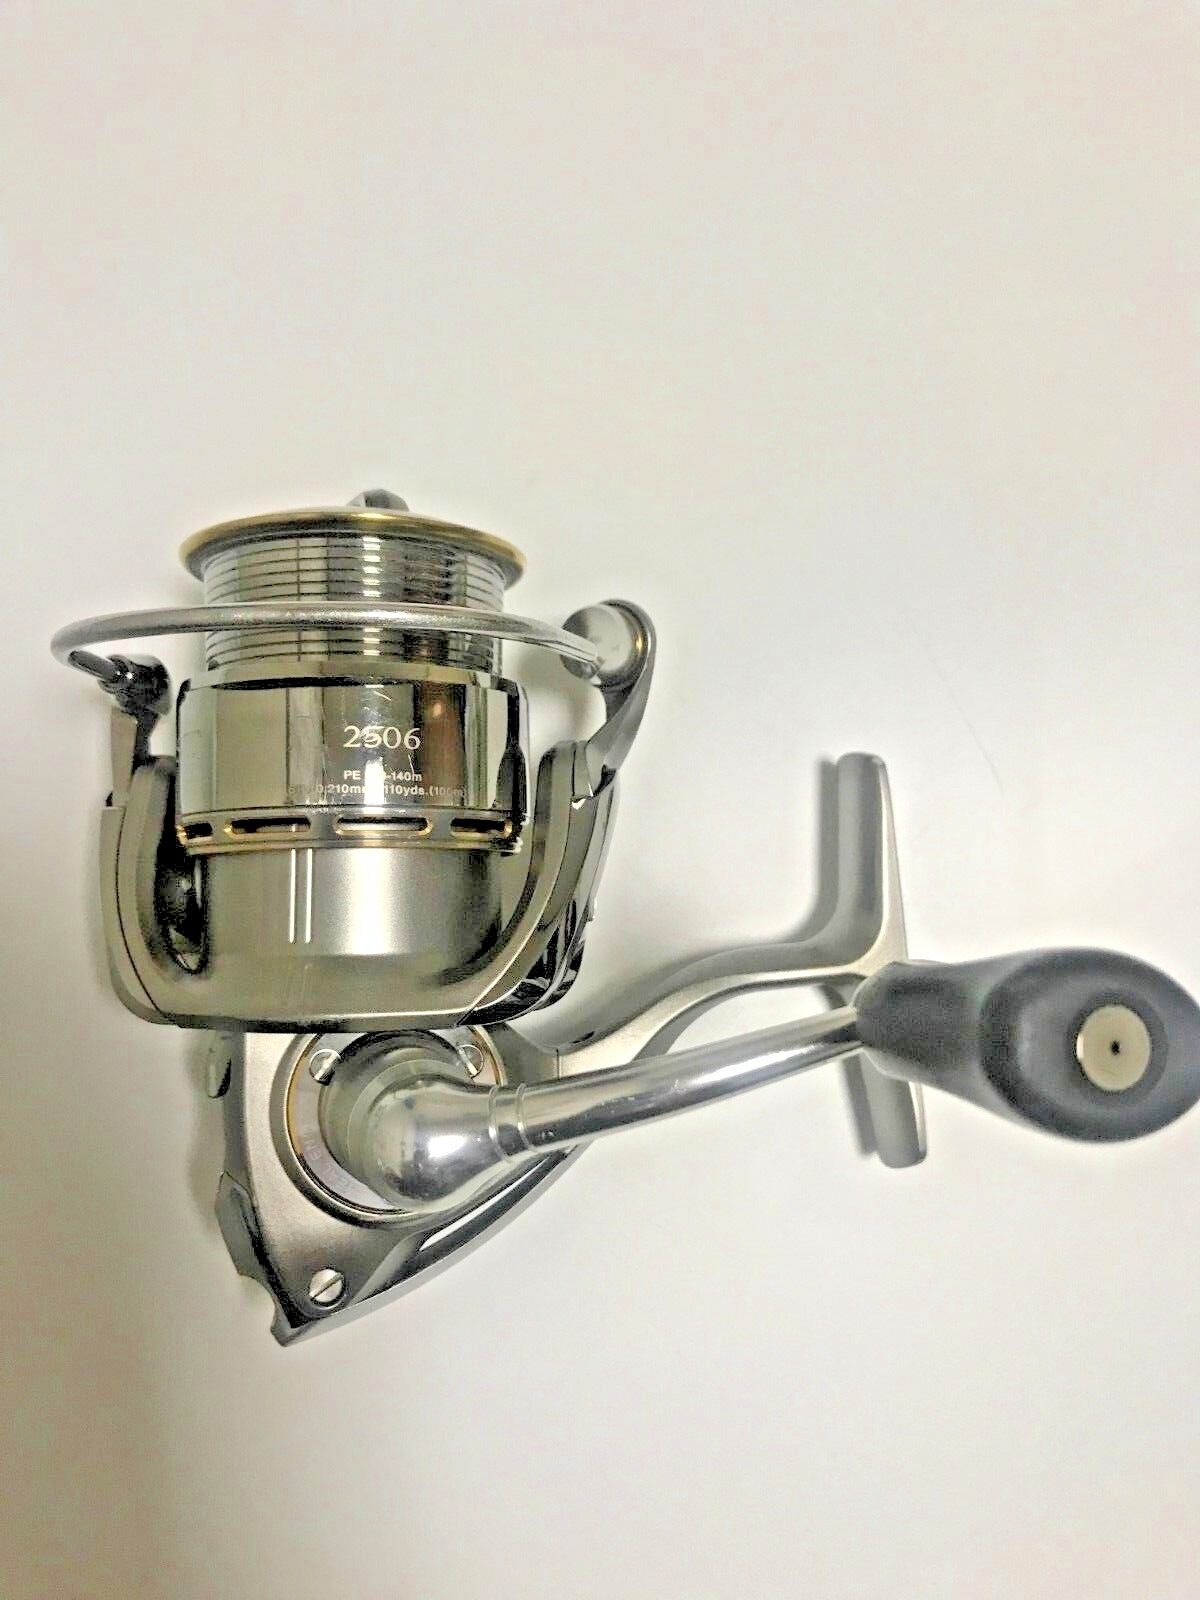 DAIWA EXIST 2506   Spinning Reel  Excellnt BASS  EGING  sale online discount